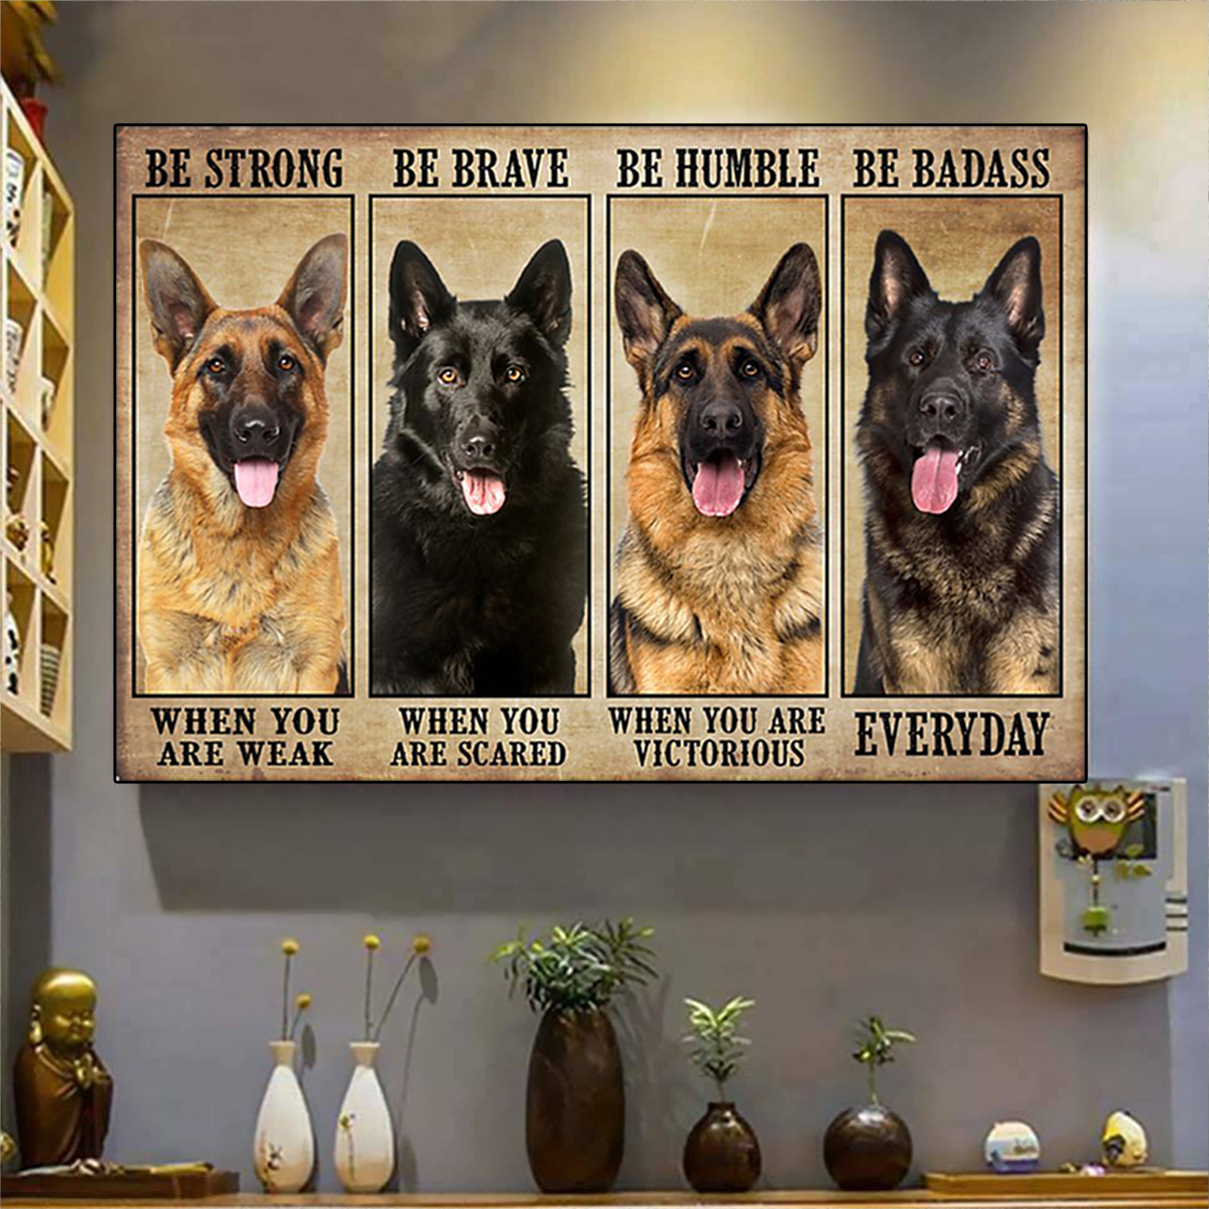 German shepherd be strong be brave be humble be badass poster A2